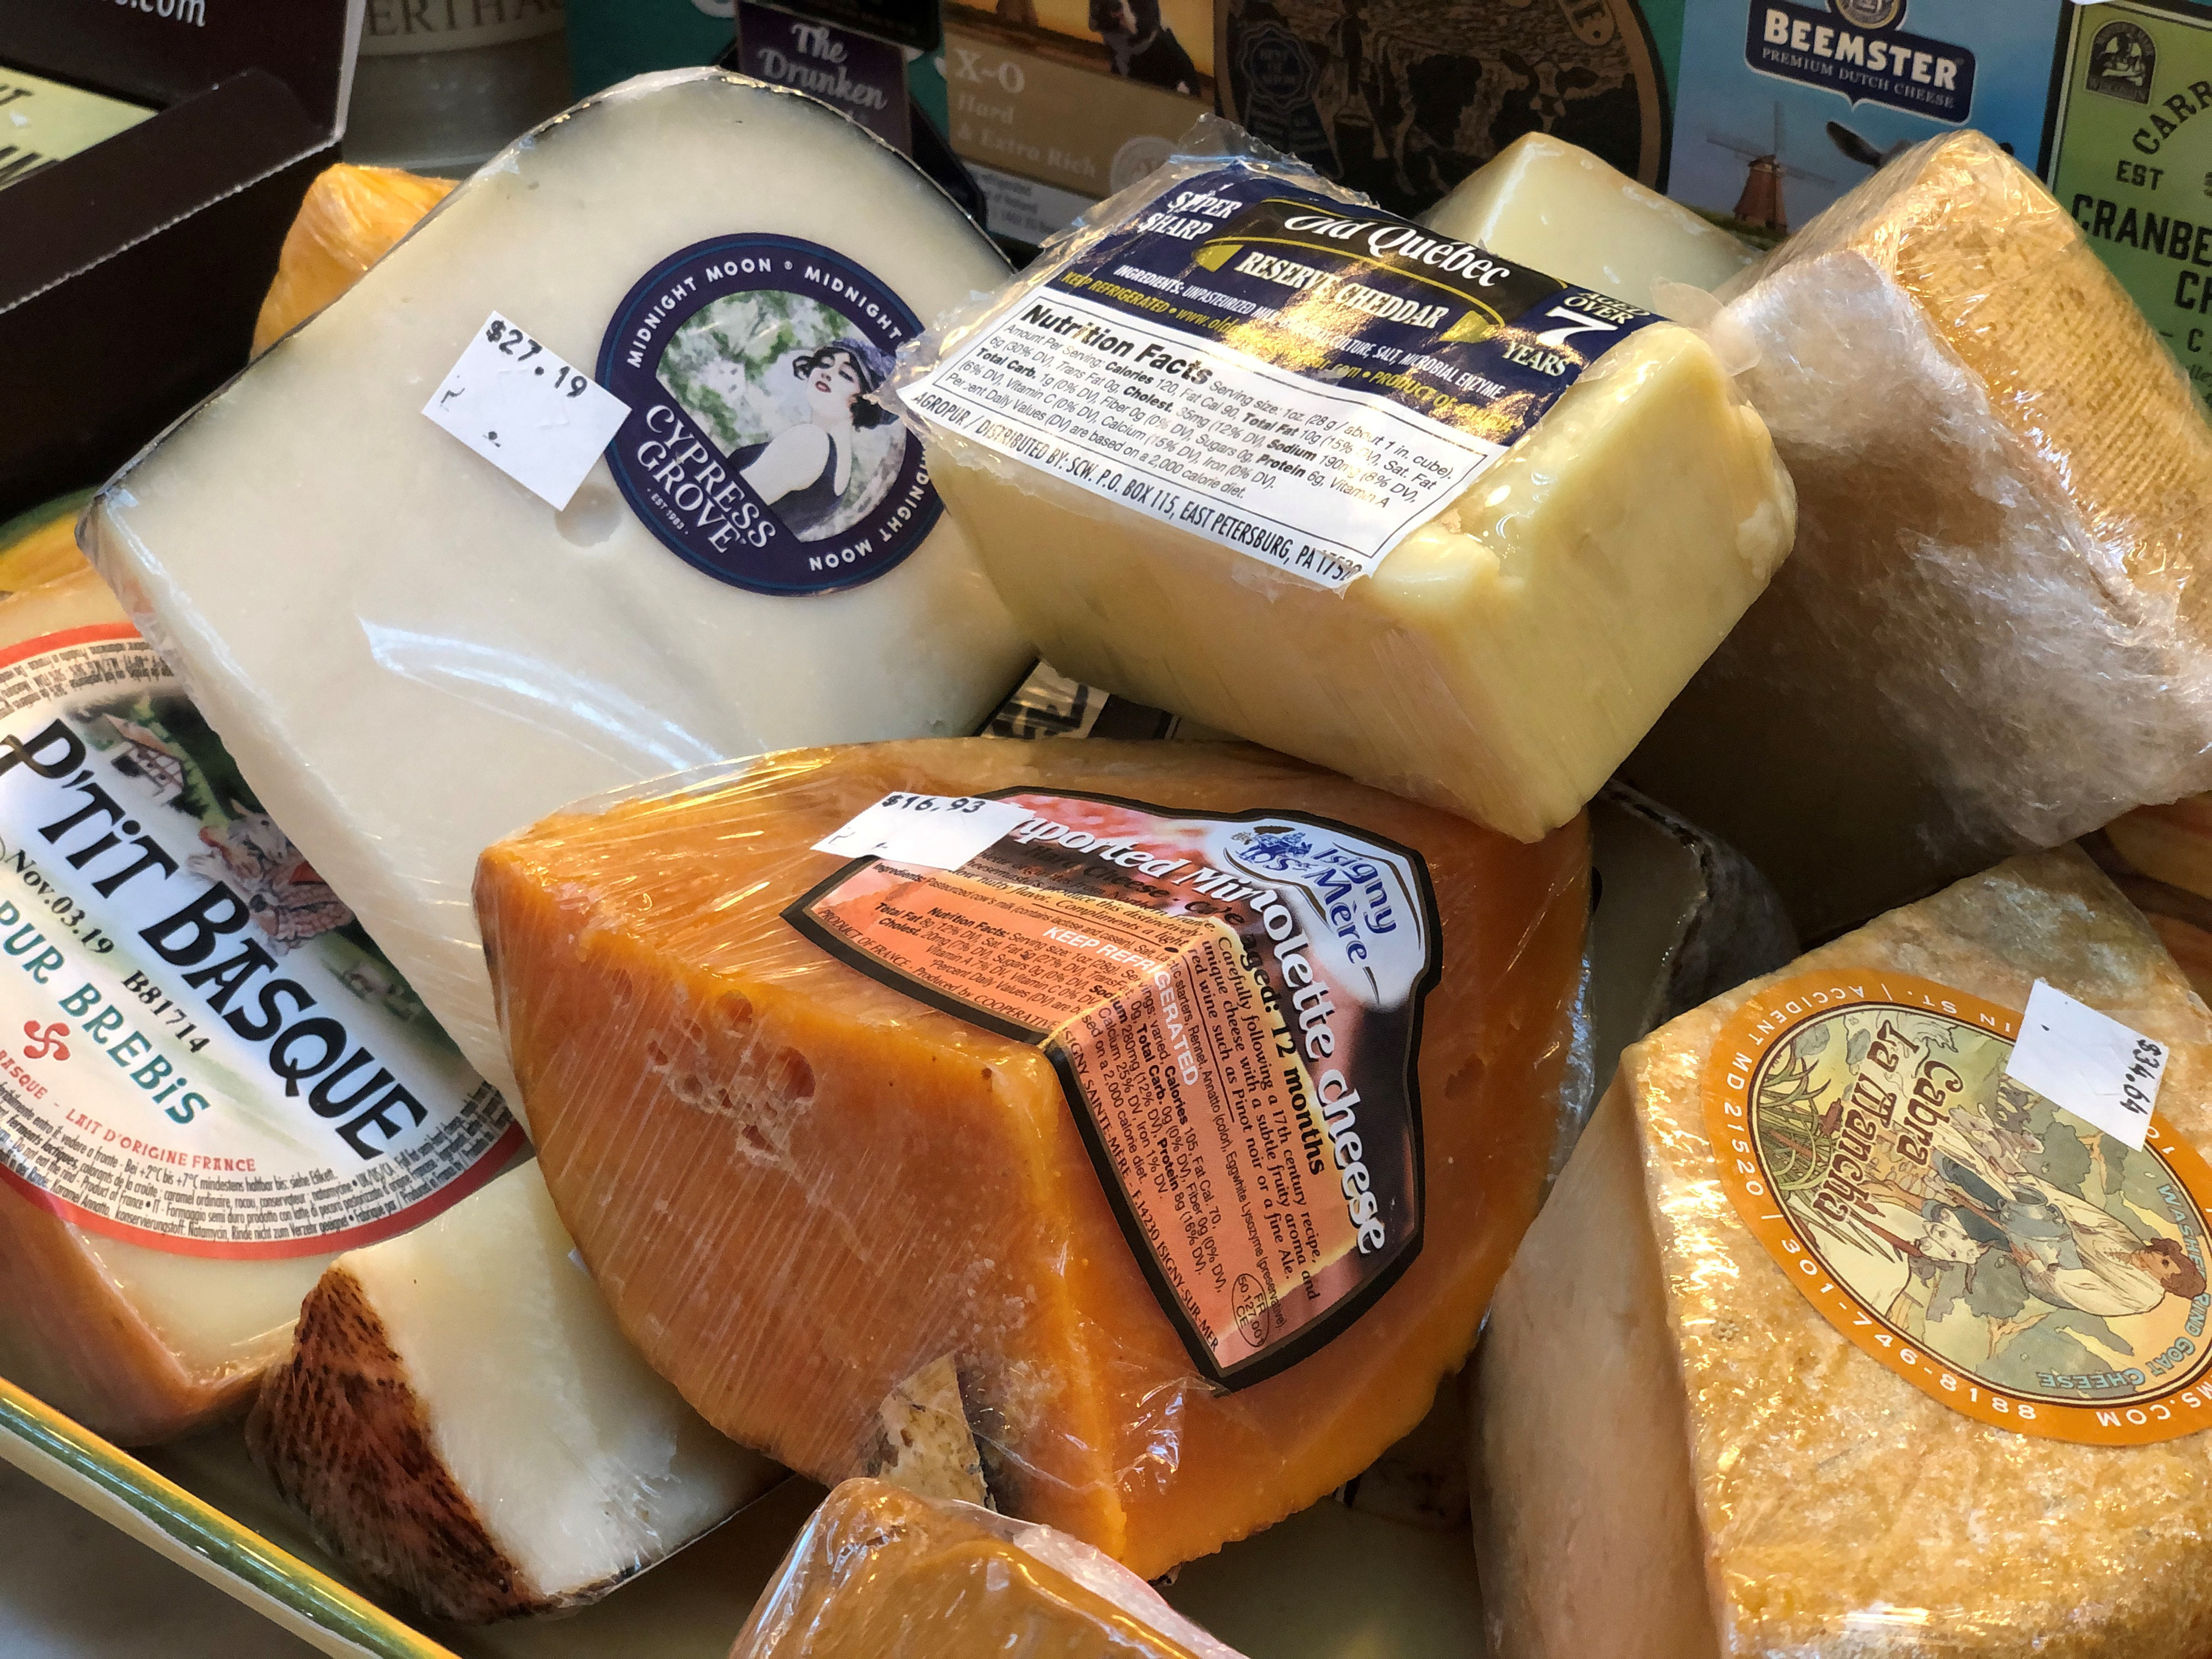 Imported European cheeses are seen on display at the Bowers Fancy Dairy Products shop in Washington's Eastern Market several weeks before the Trump administration's tariffs on European Union cheeses are set to kick in across the country and in Washington, U.S. October 3, 2019. Picture taken October 3, 2019.   REUTERS/Kevin Fogarty - RC1E7885CCE0